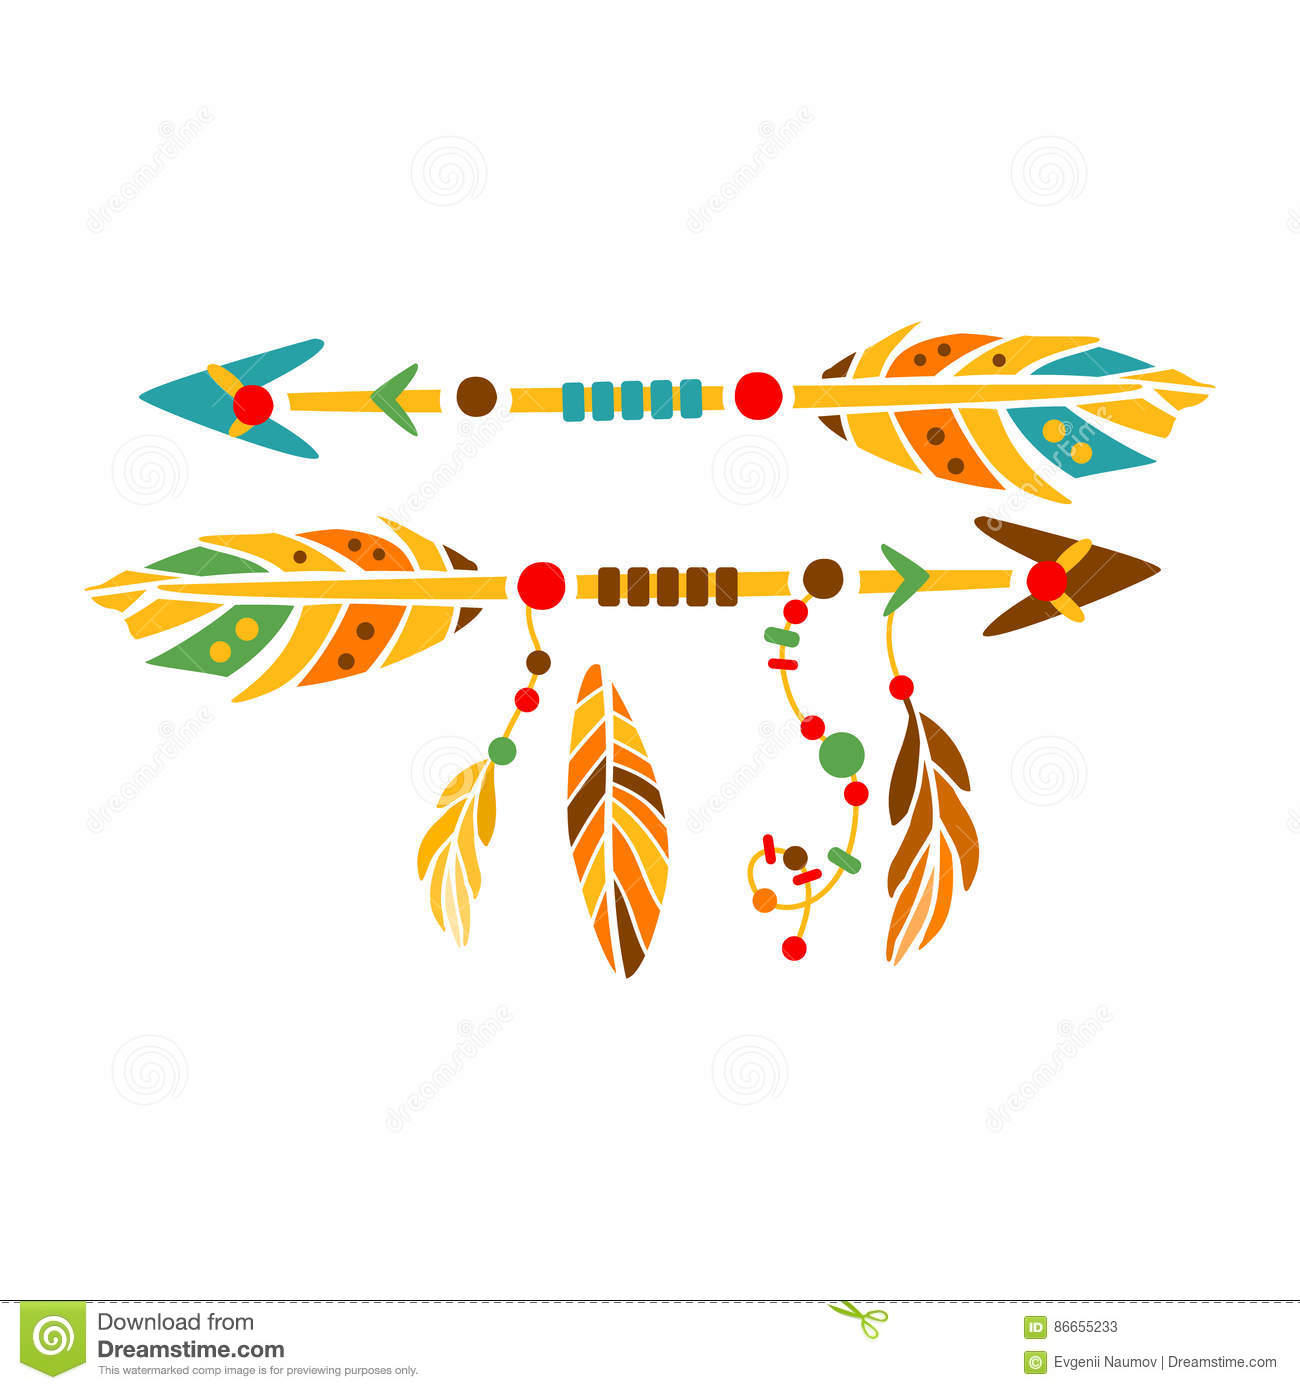 Two Decorative Arrows With Feathers Native Indian Culture Inspired Boho Ethnic Style Print Stock Vector Illustration Of Concept Printable 86655233